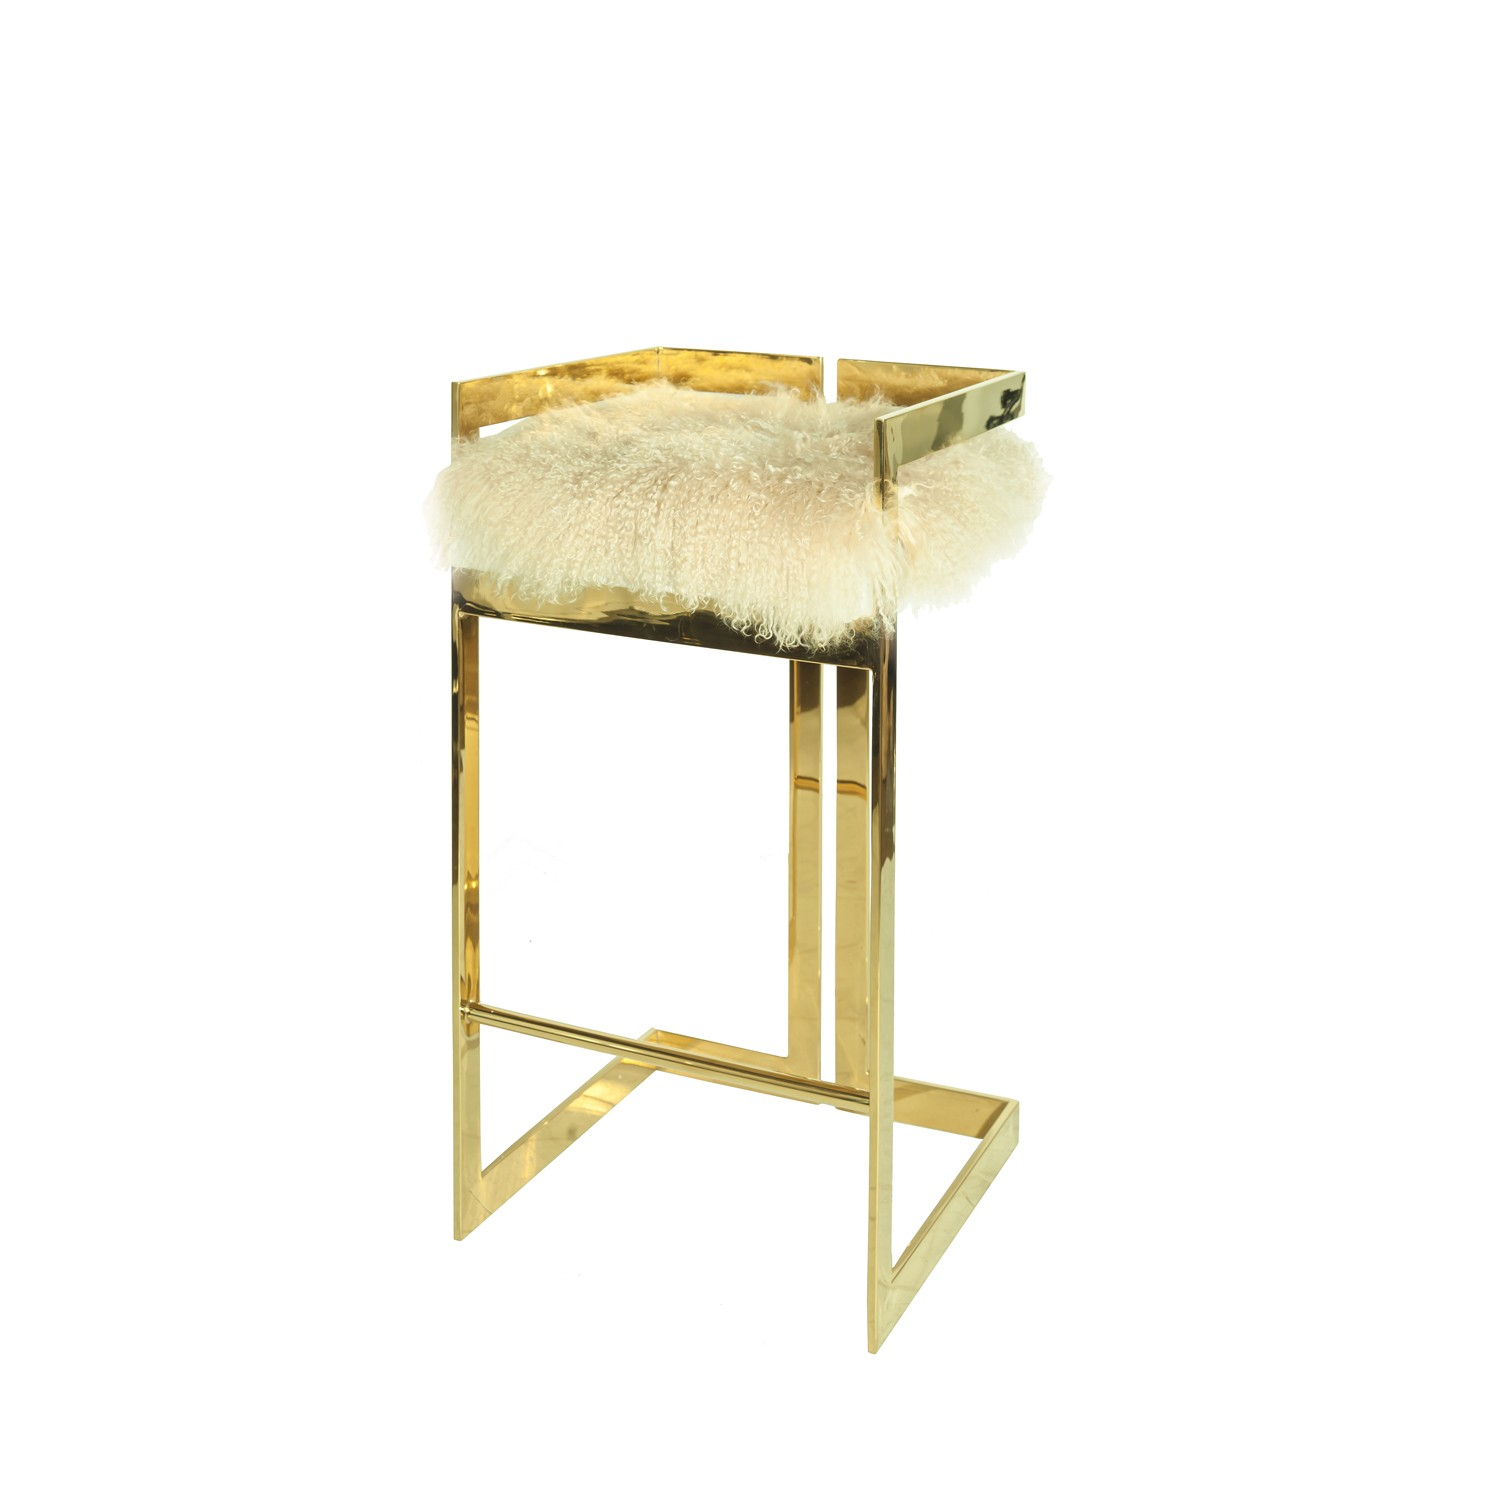 Hearst Counter Stool With Mongolian Fur Seat Intended For 2018 Hearst Bar Tables (Image 16 of 25)